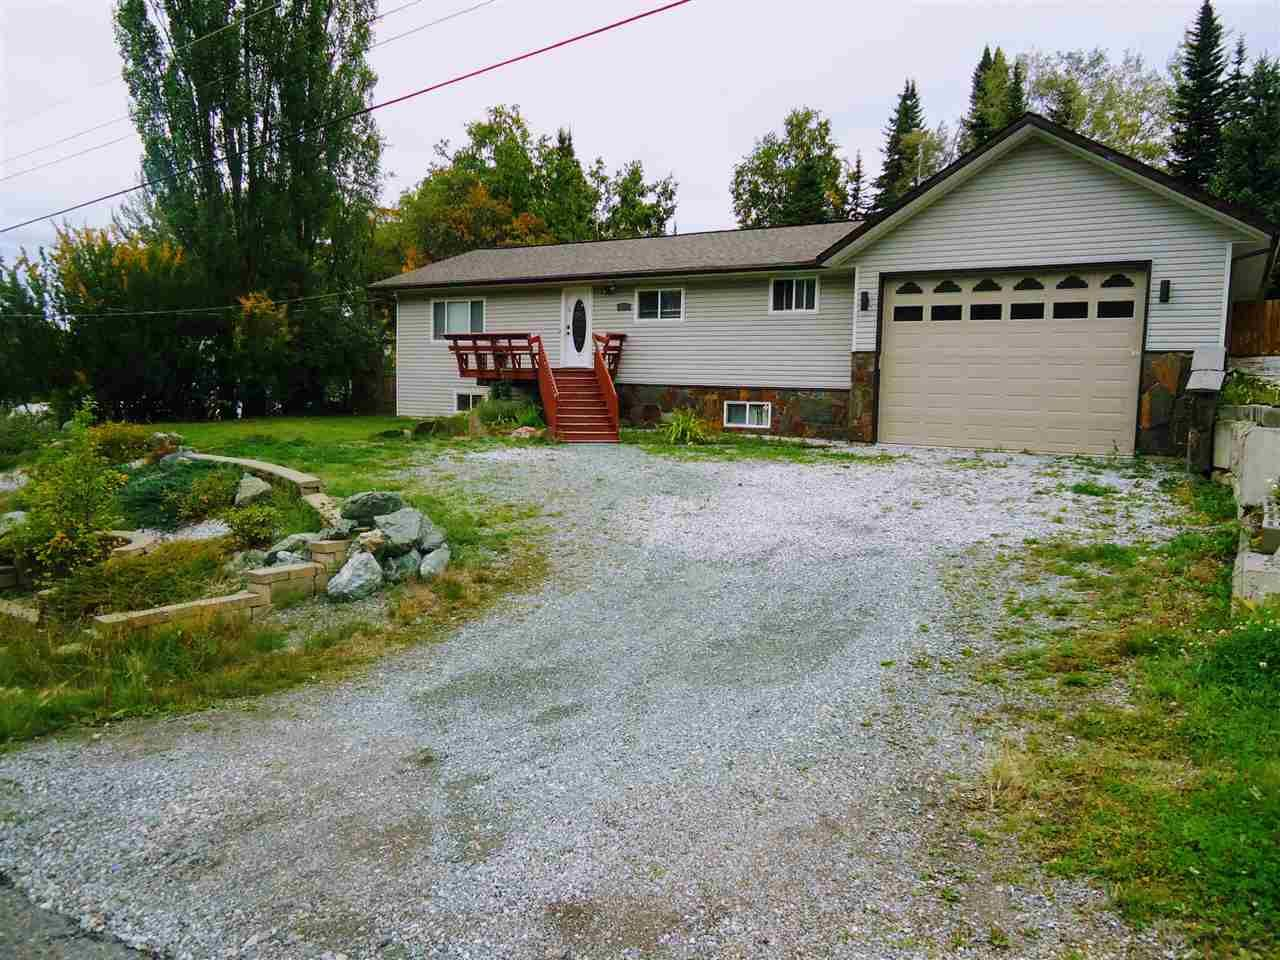 Main Photo: 7200 BEAR Road in Prince George: Lafreniere House for sale (PG City South (Zone 74))  : MLS®# R2403913